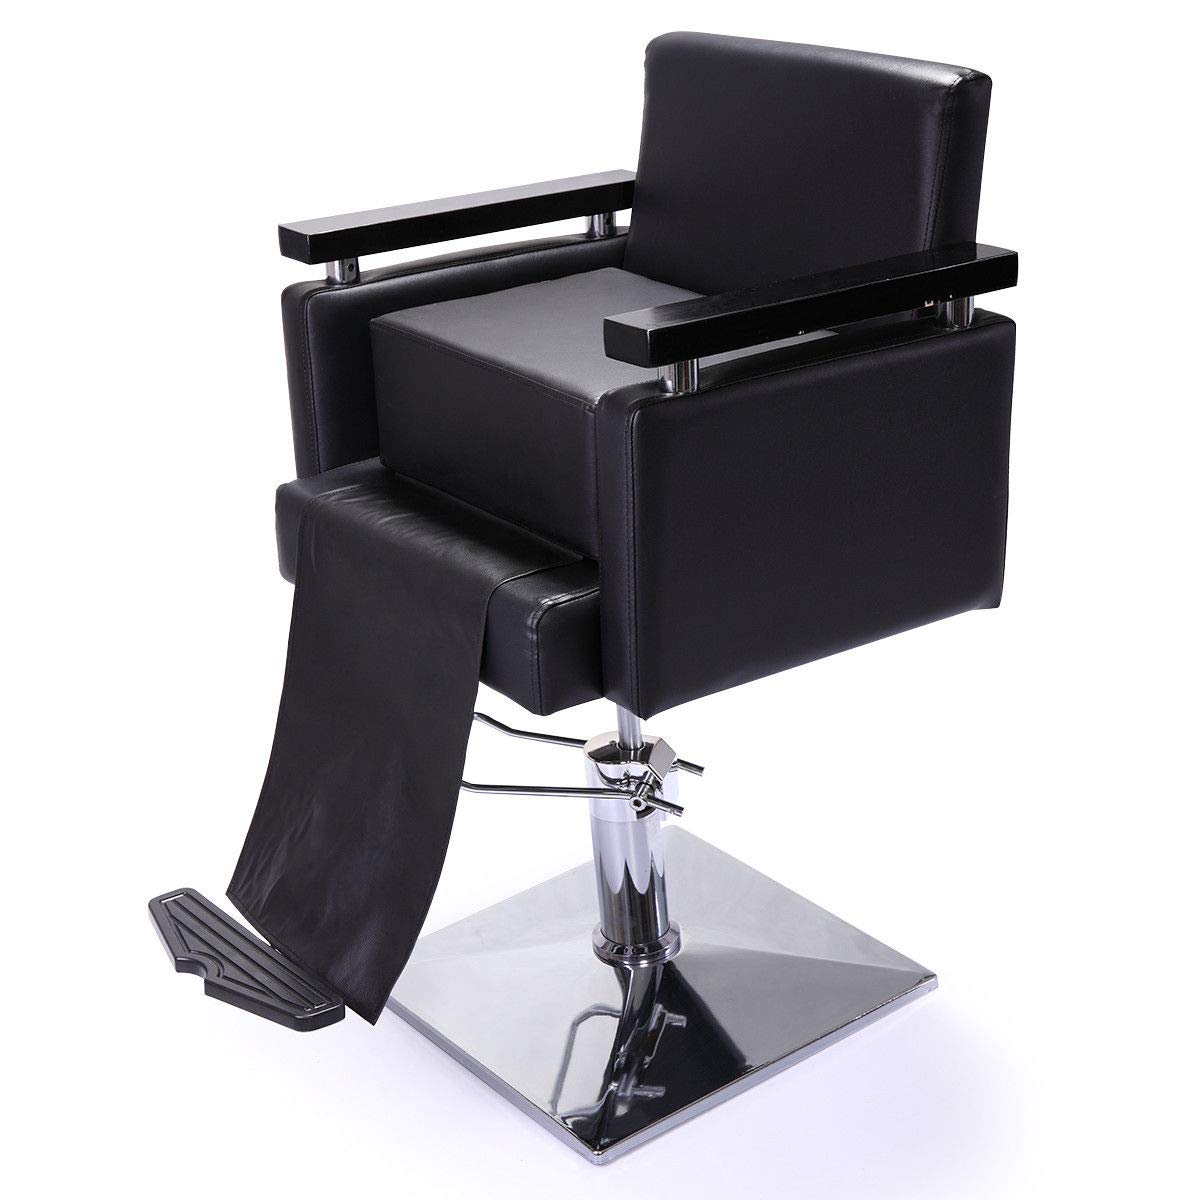 Salon Barber Seat Child Booster Styling Chair Cushion Black by BWM Co.